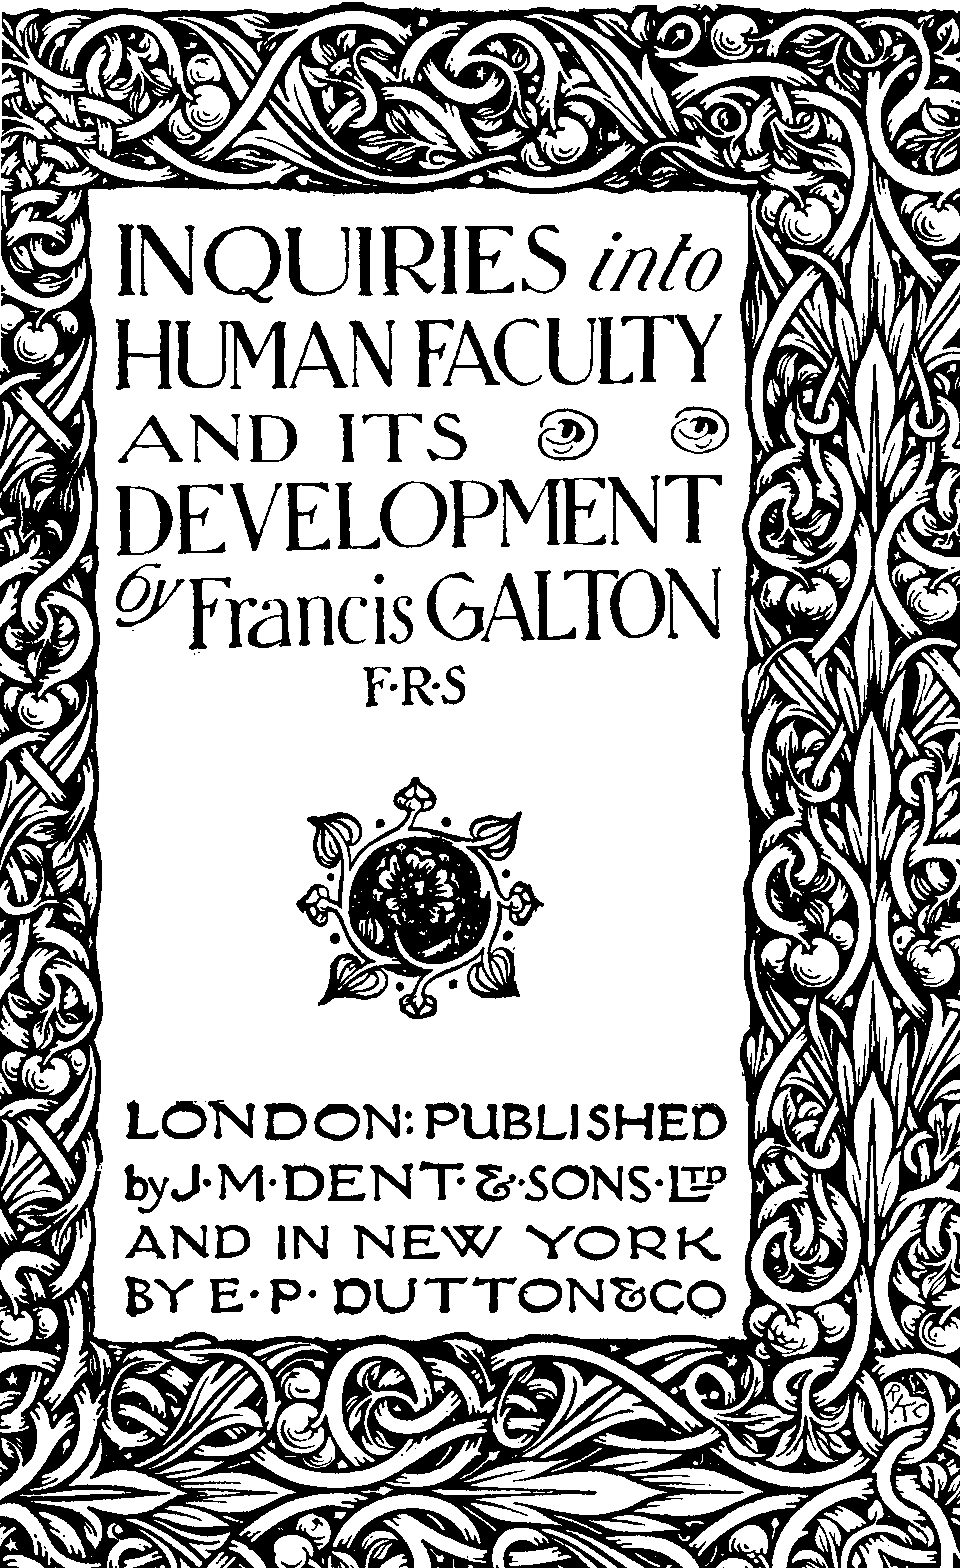 The project gutenberg ebook of inquiries into human faculty and its frontispiece fandeluxe Gallery